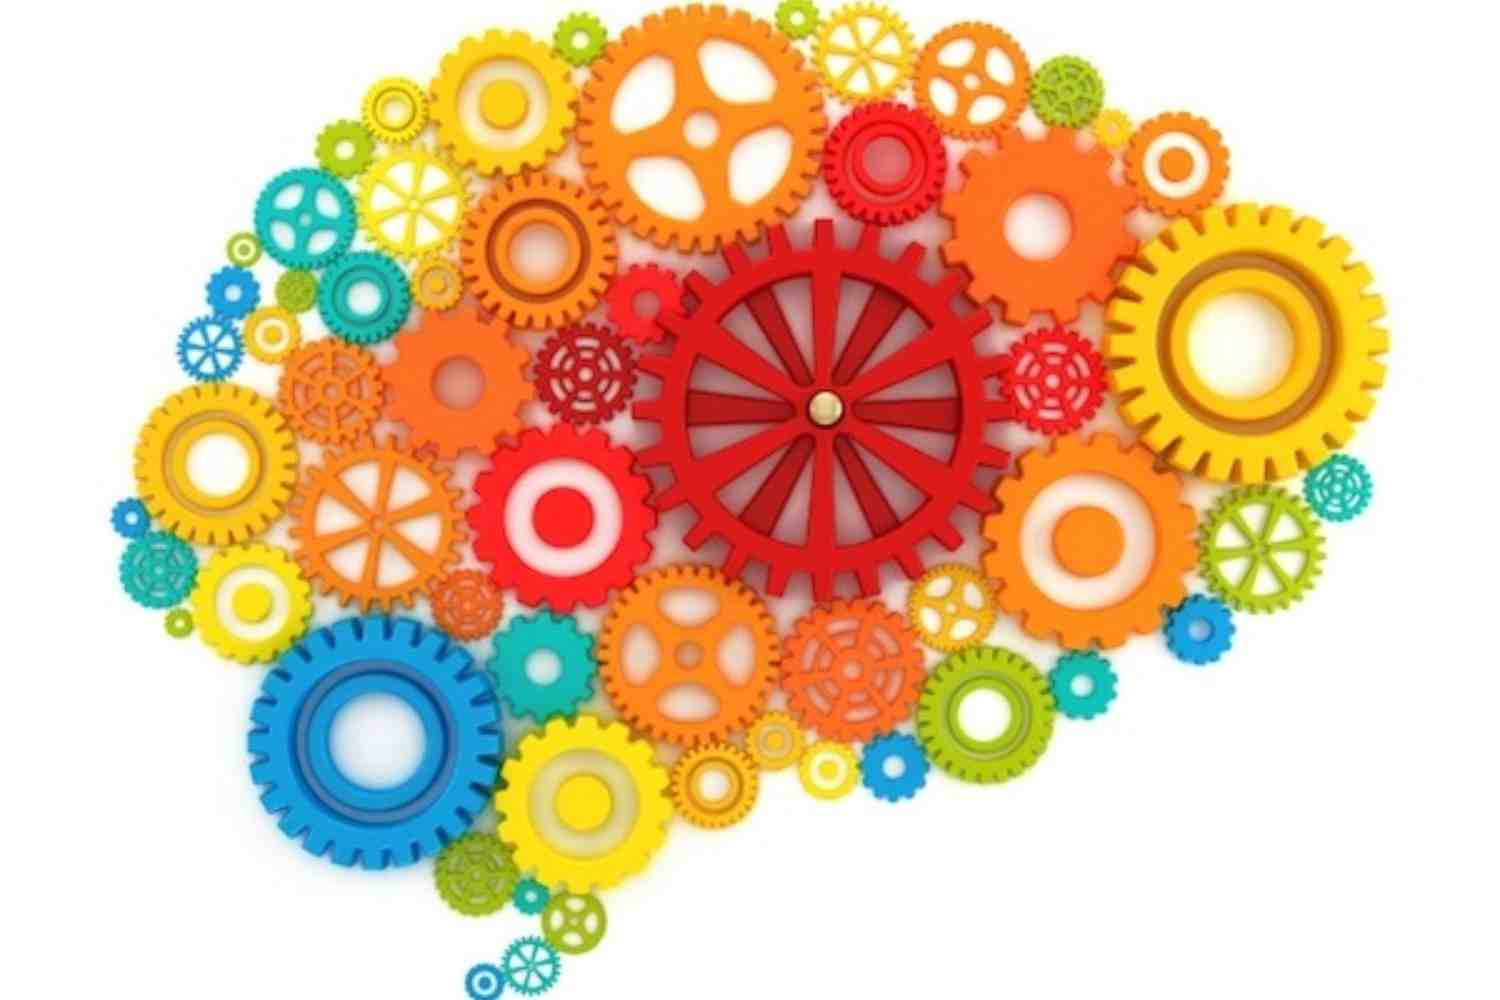 Why is creativity and innovation important in business?